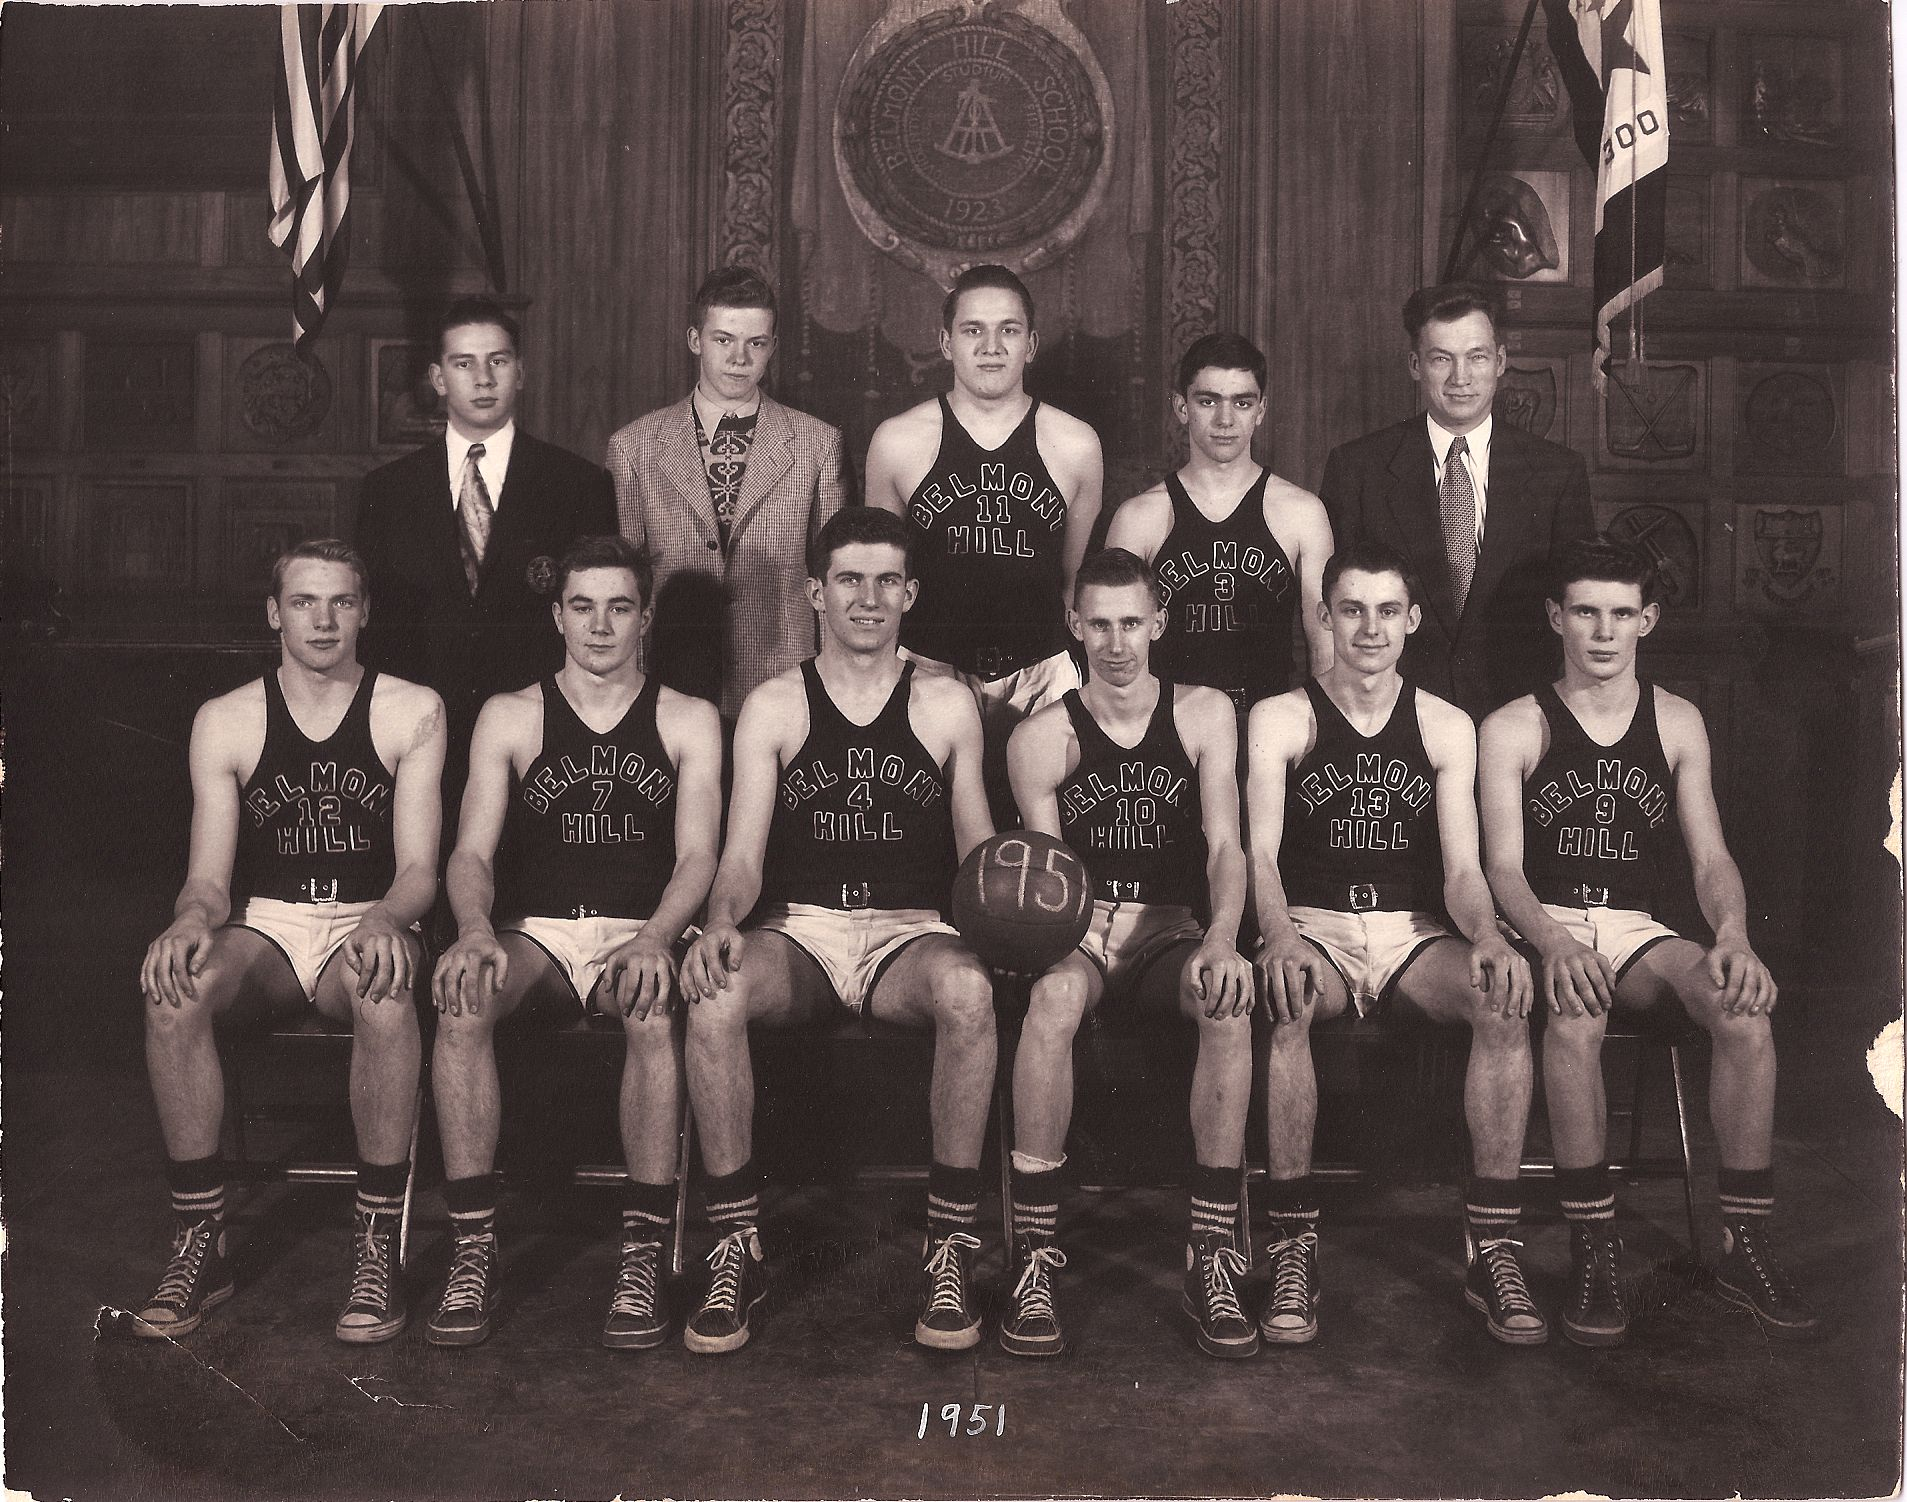 First Row: N. Hurlbut,W. Manly, Co-Captains F. Scanlan and G. Cranney, R. Studley, G. Vrotsos Second Row: Managers R. blacklow, R. Cooke, M. Patterson, H. Ulfedler, Mr. Croke